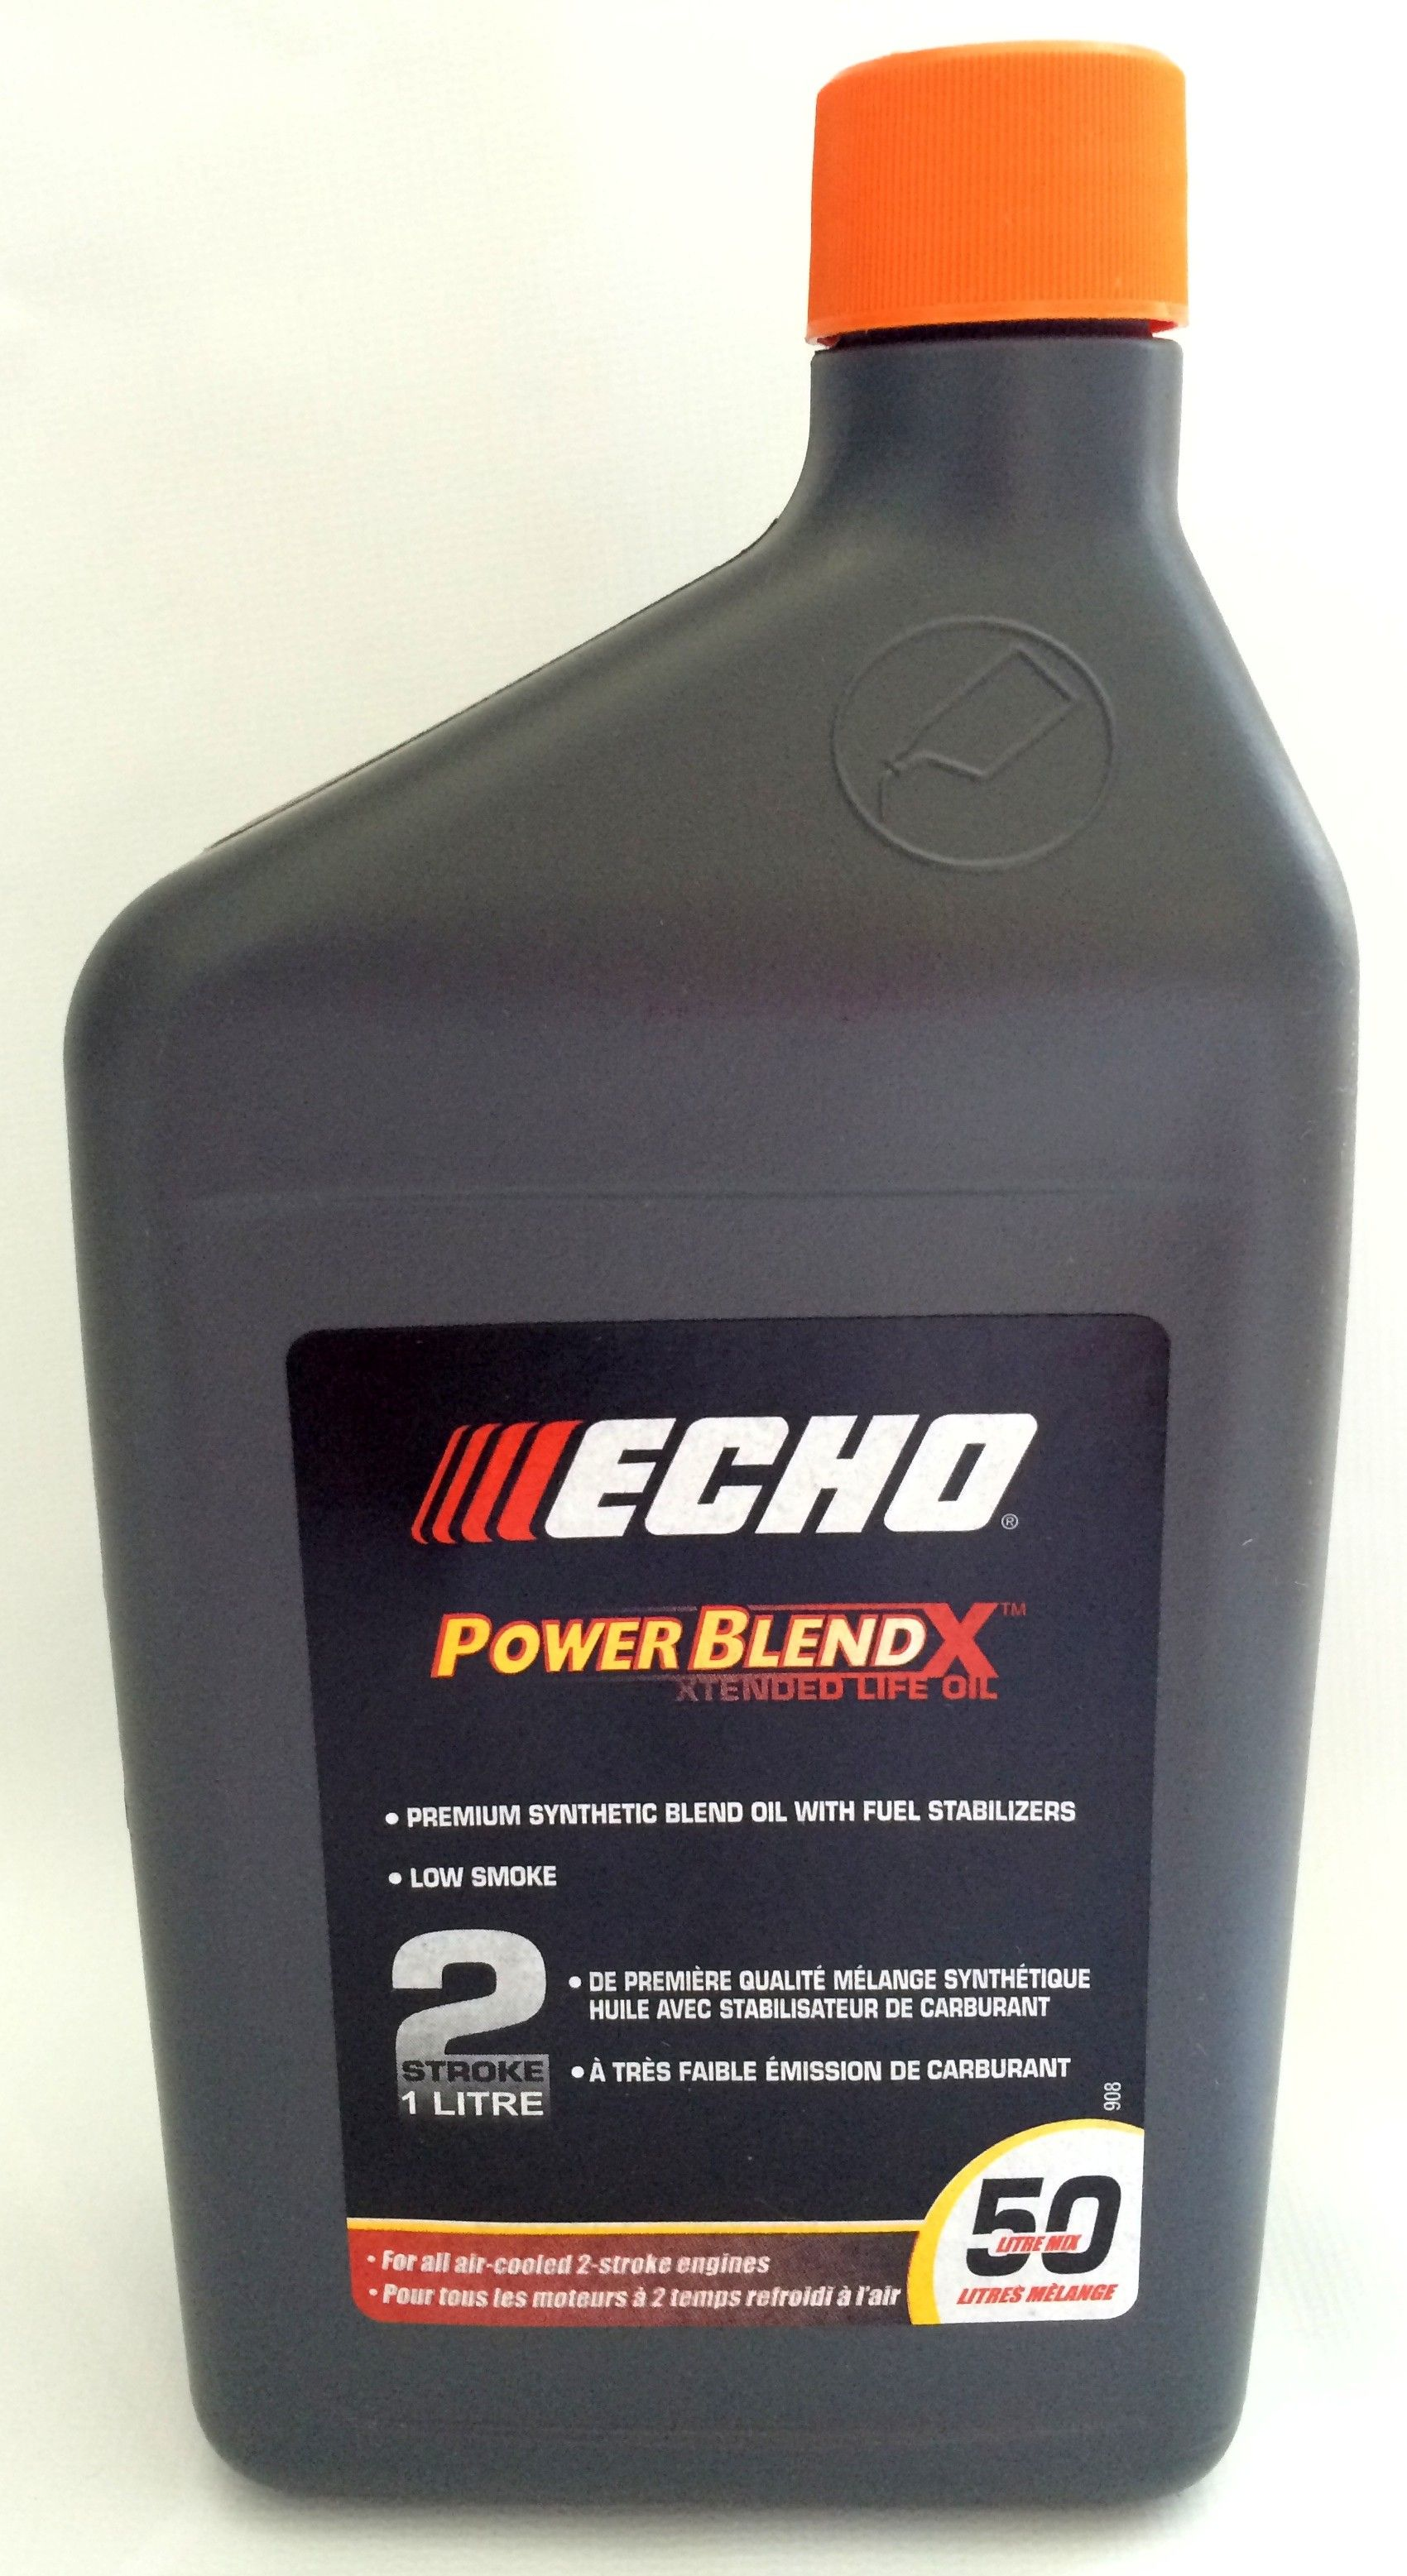 ECHO 1 litre bottle of Premium Synthetic 2-stroke oil